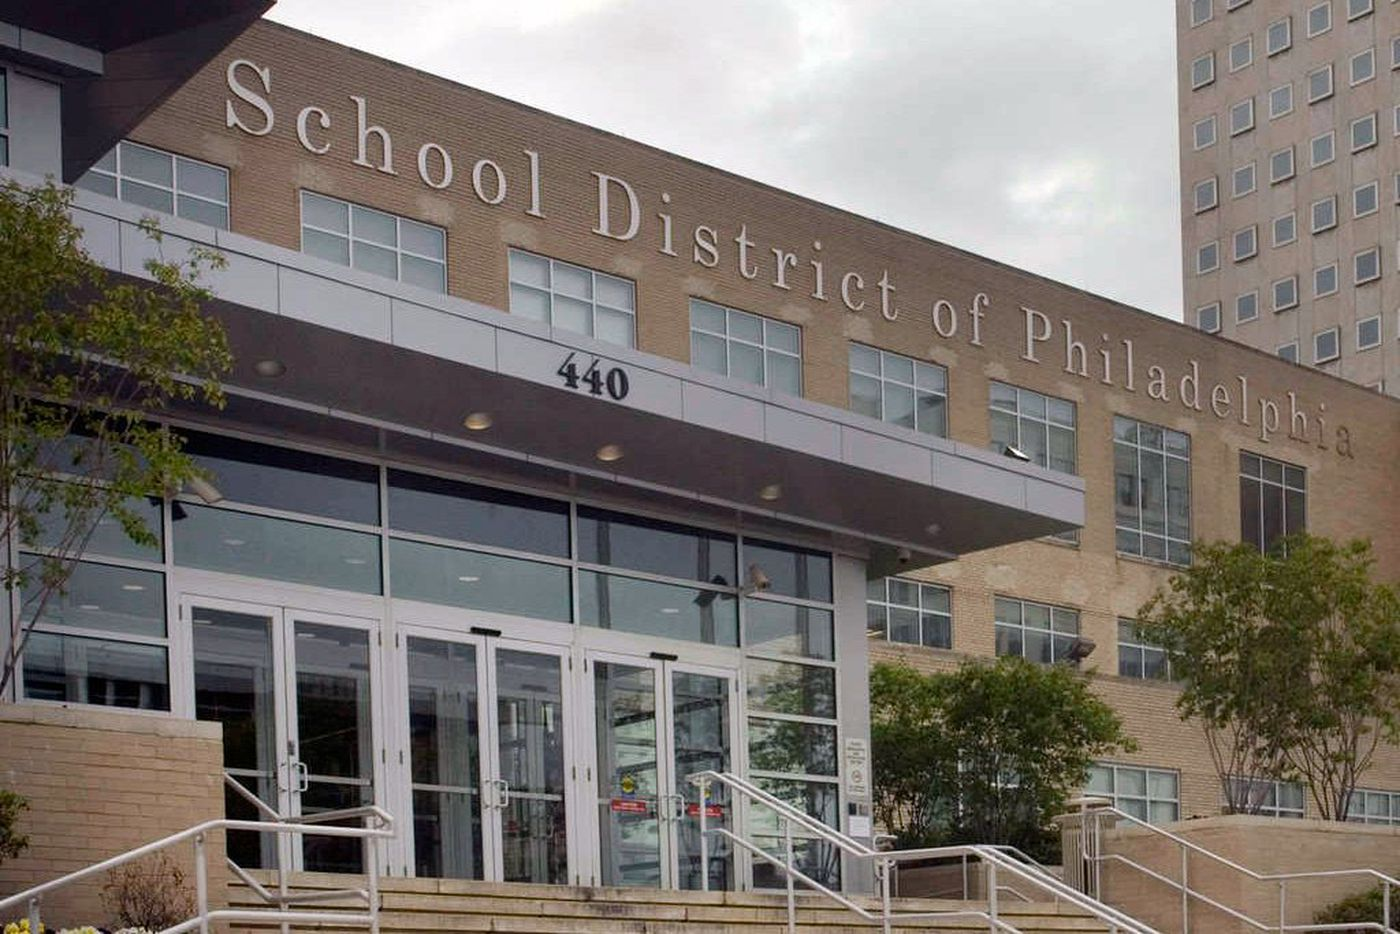 Eight-year-old assaulted by Philly school police, father says